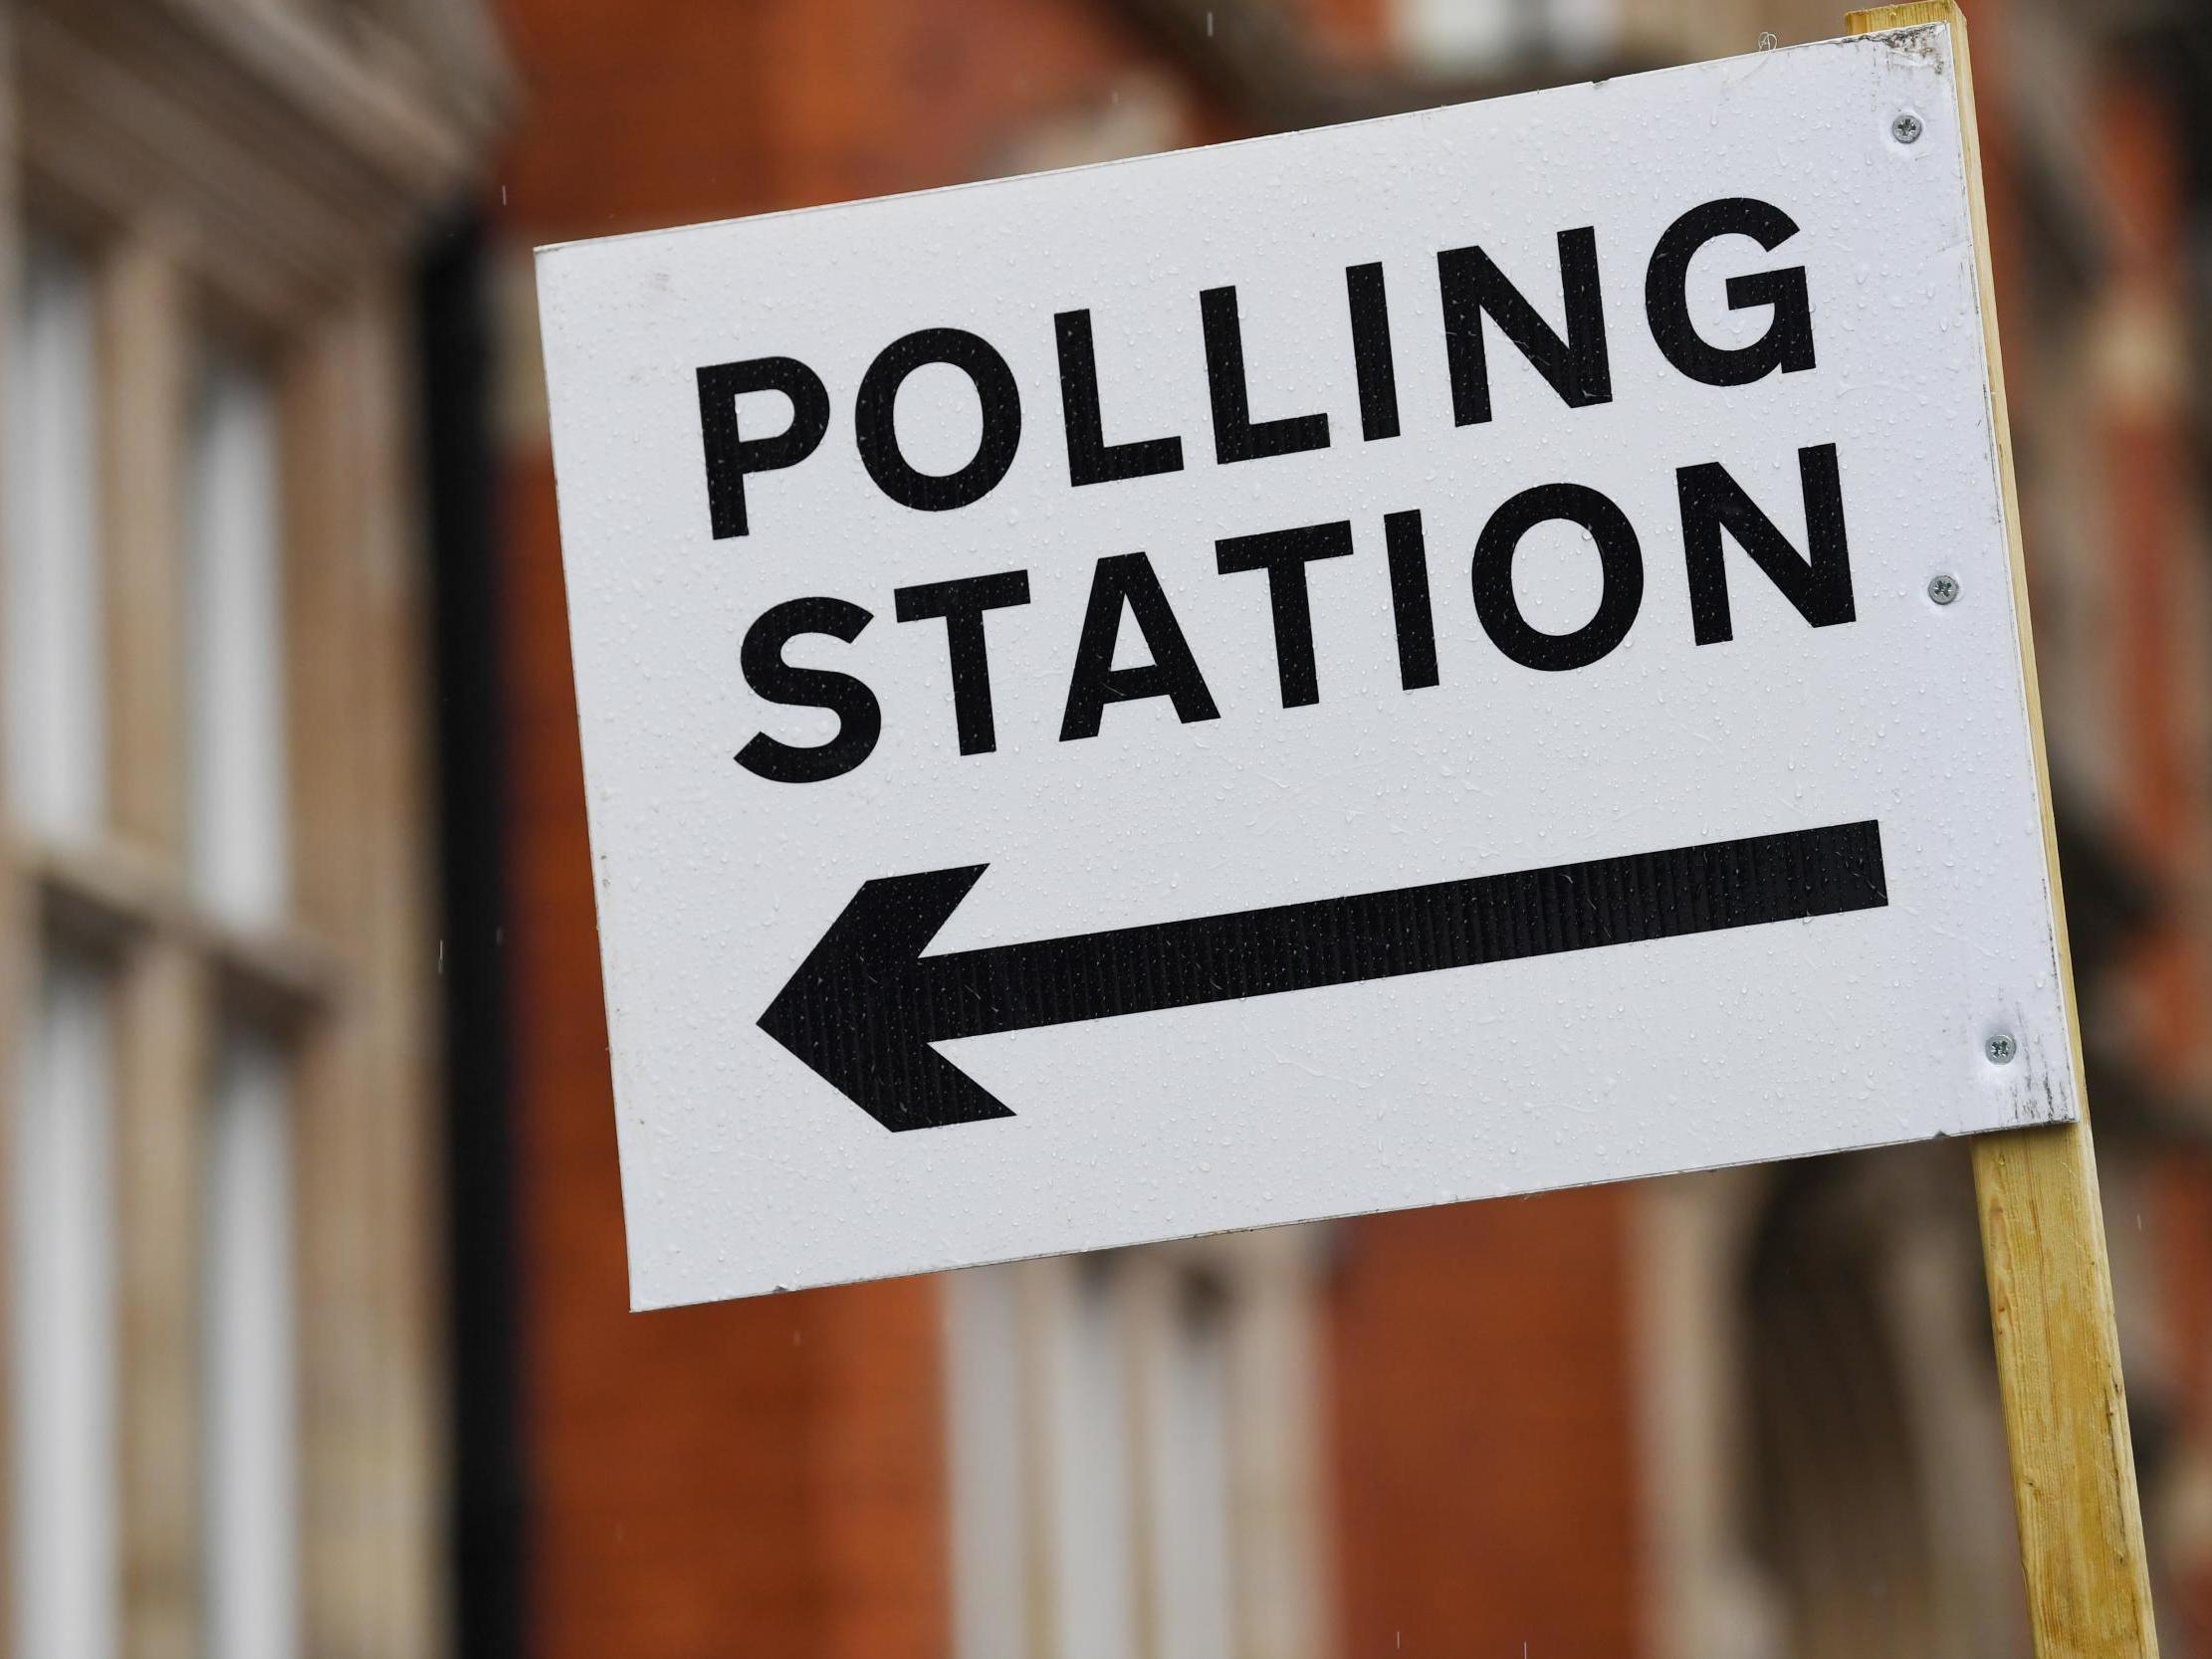 How to vote in the UK general election: Where is my nearest polling station? | The IndependentShapeleftrightShapeShapeleftrightShape